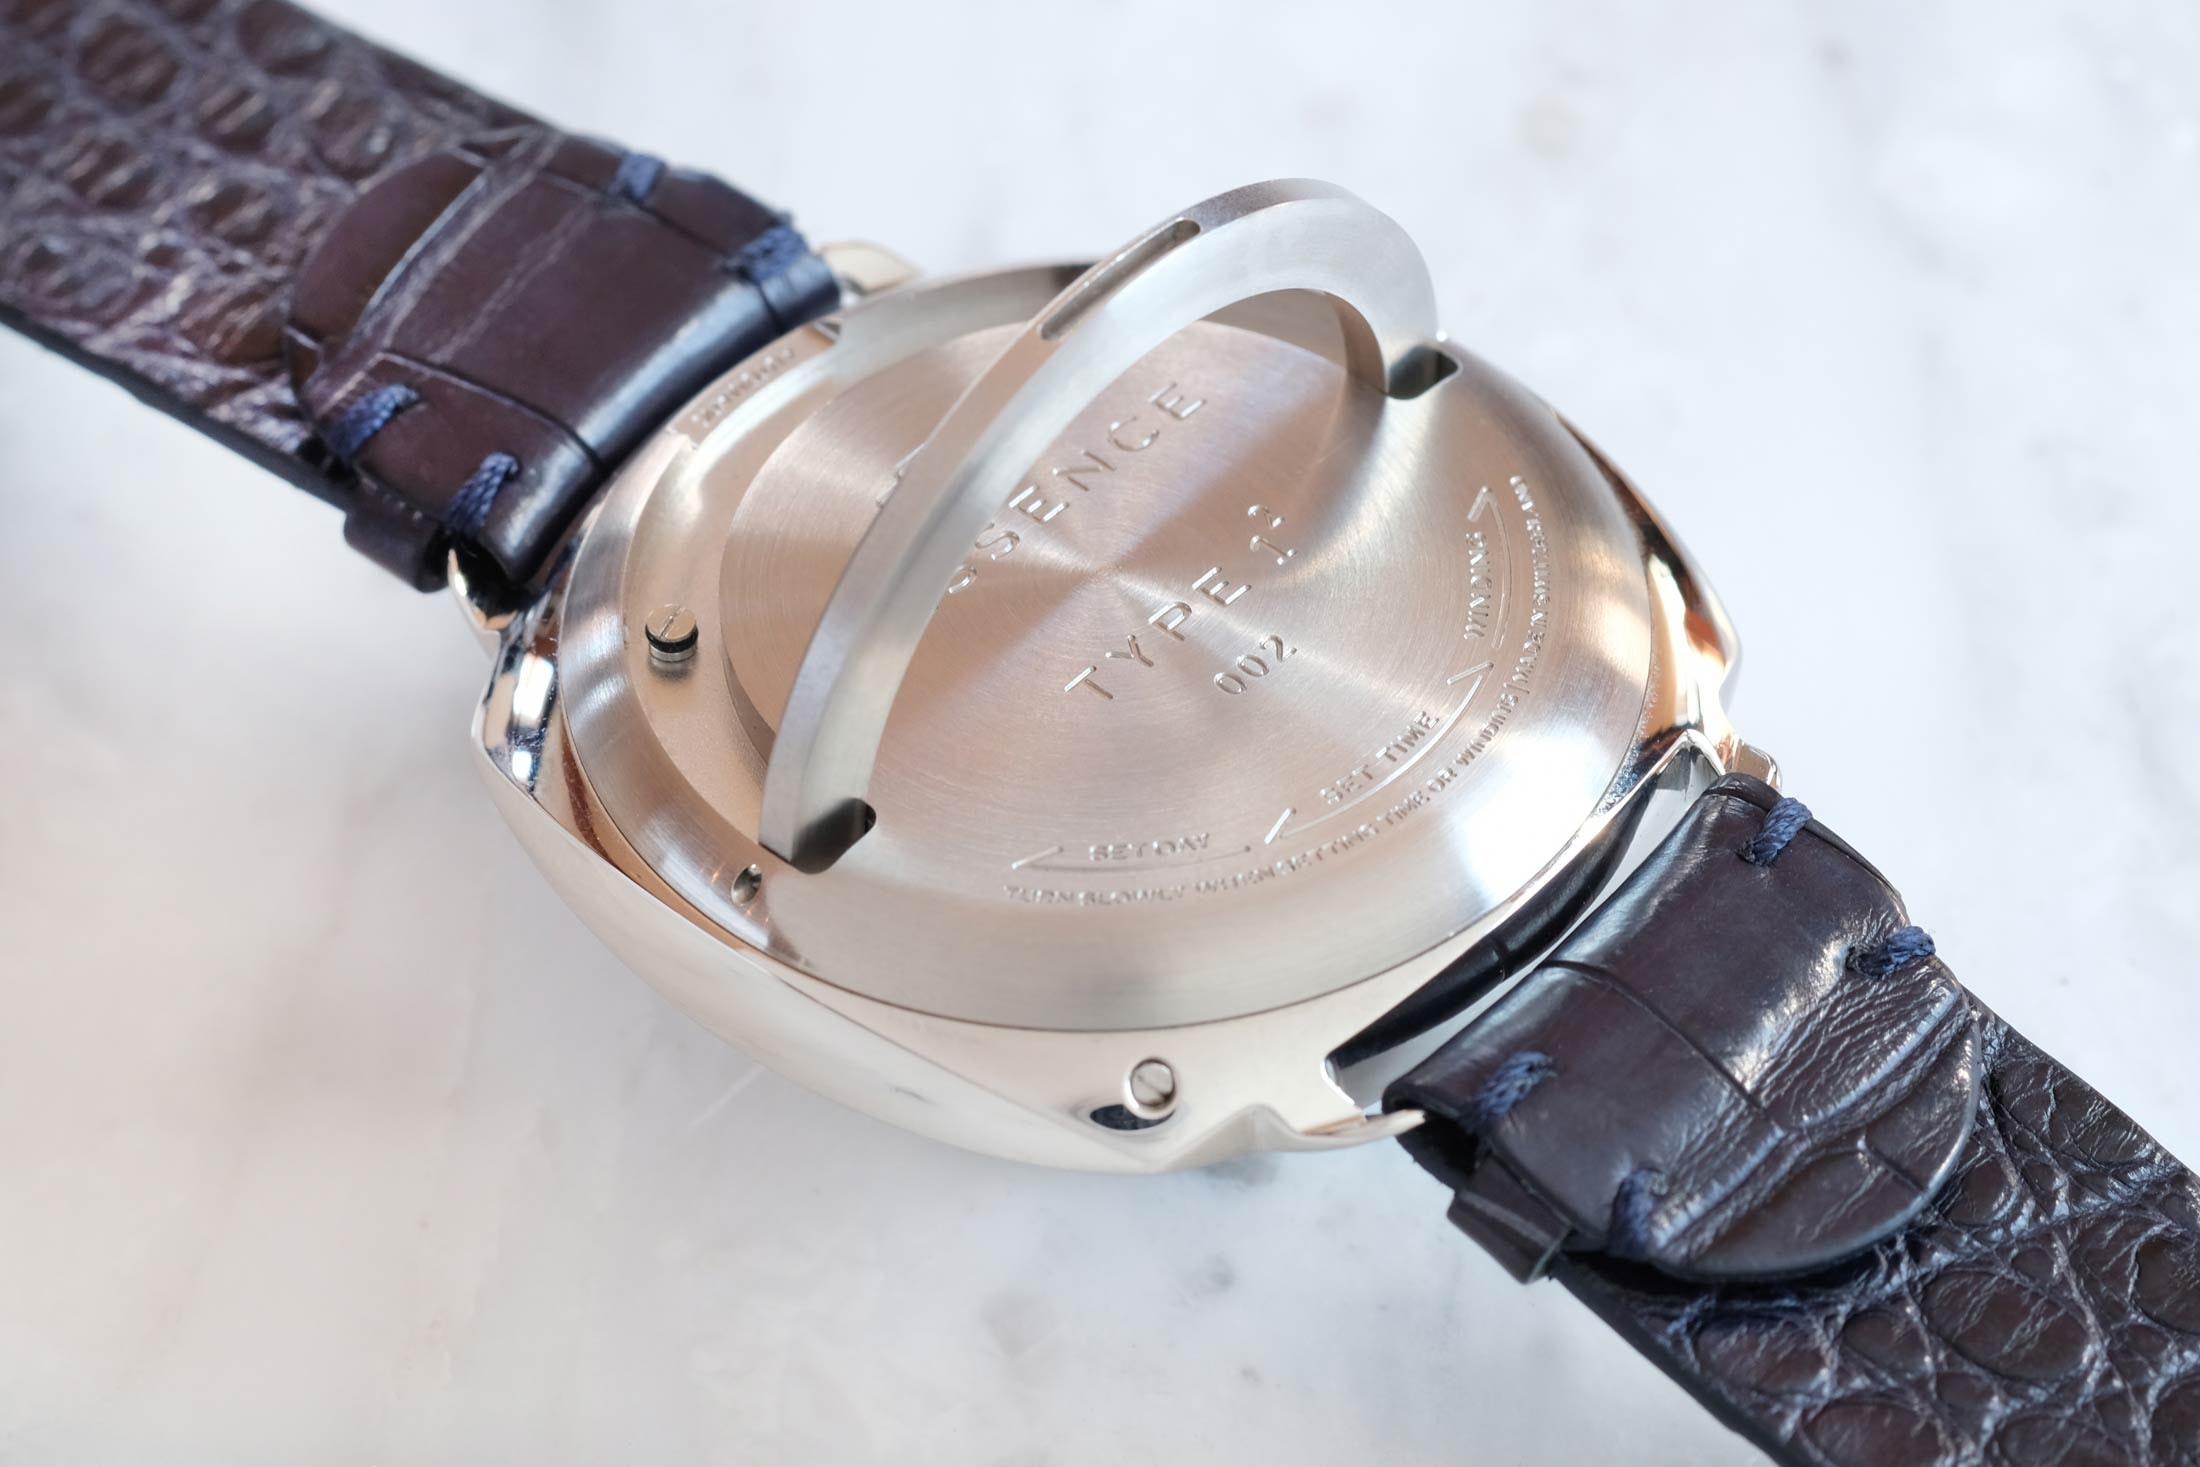 ressence type 1 squared winding key Hands-On: The Ressence Type 1 Squared Hands-On: The Ressence Type 1 Squared ressence squared 17